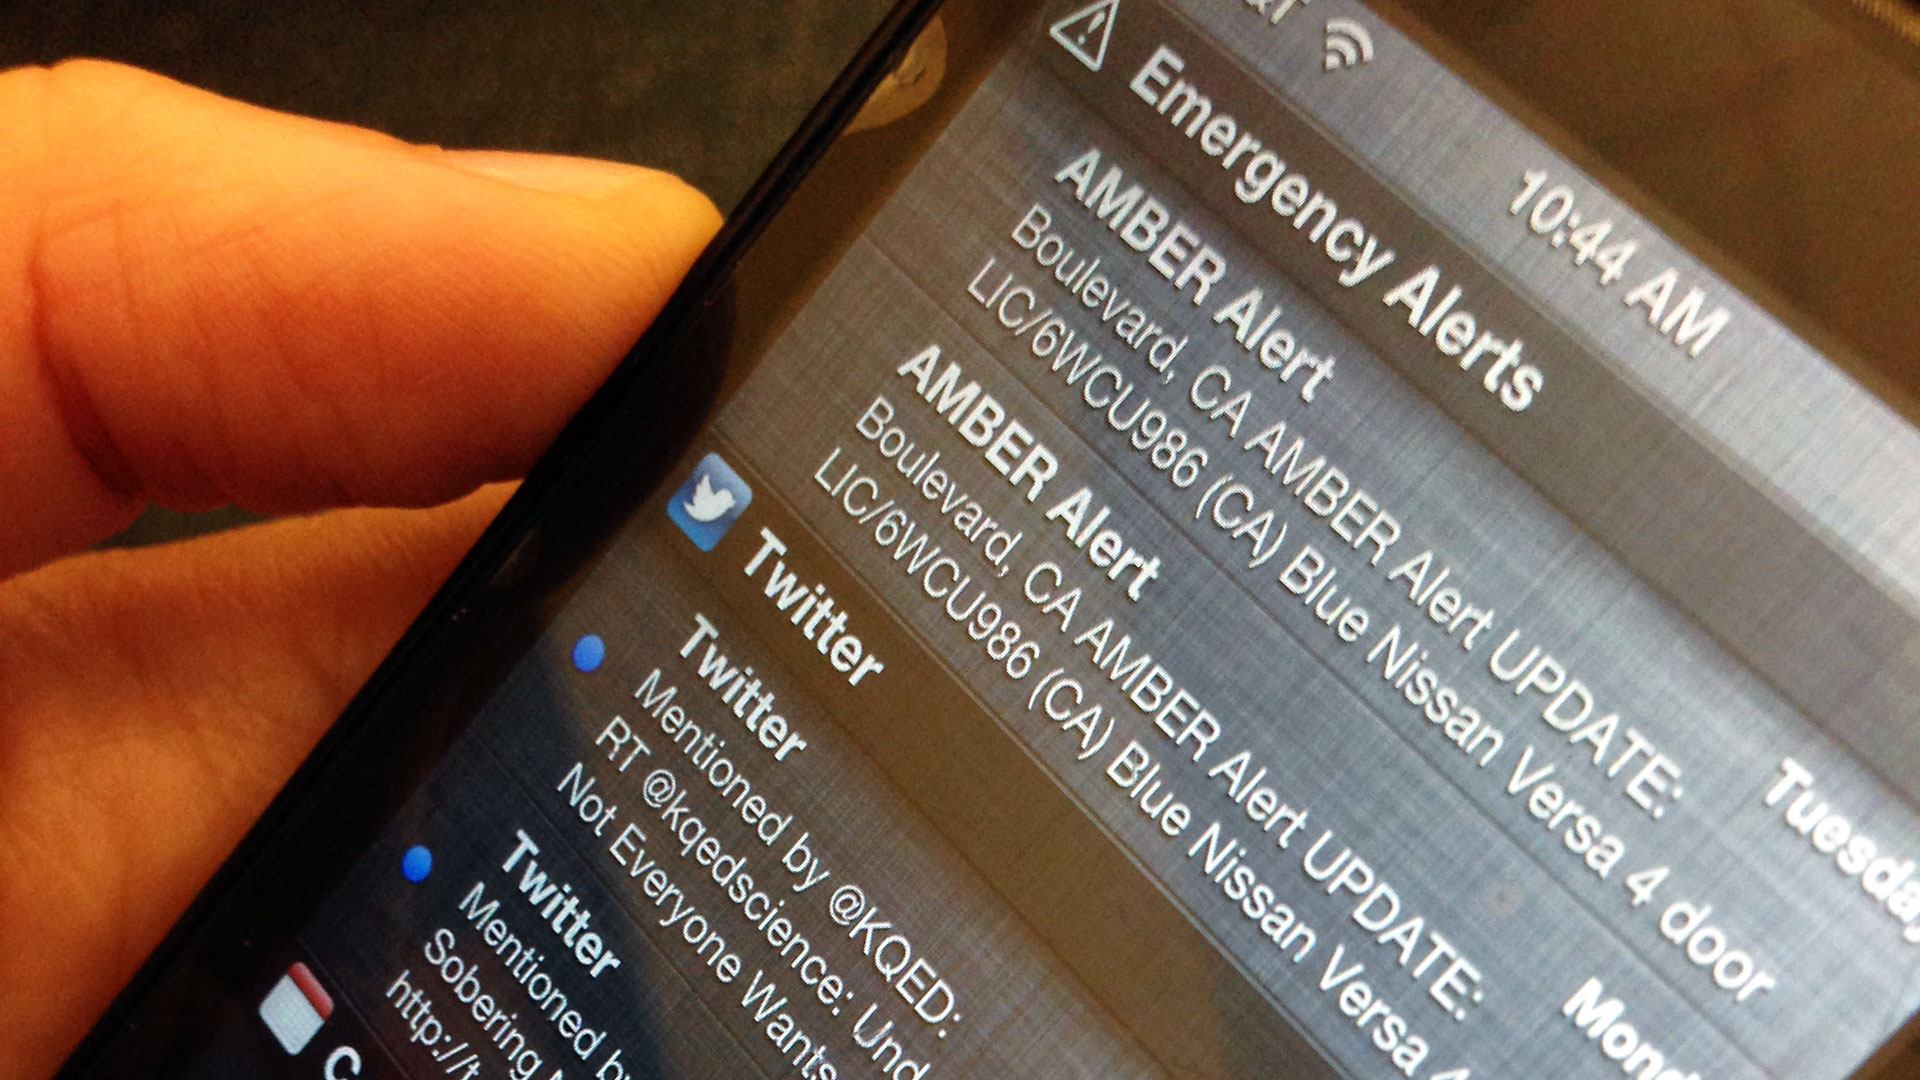 An Amber Alert appears on a smartphone.